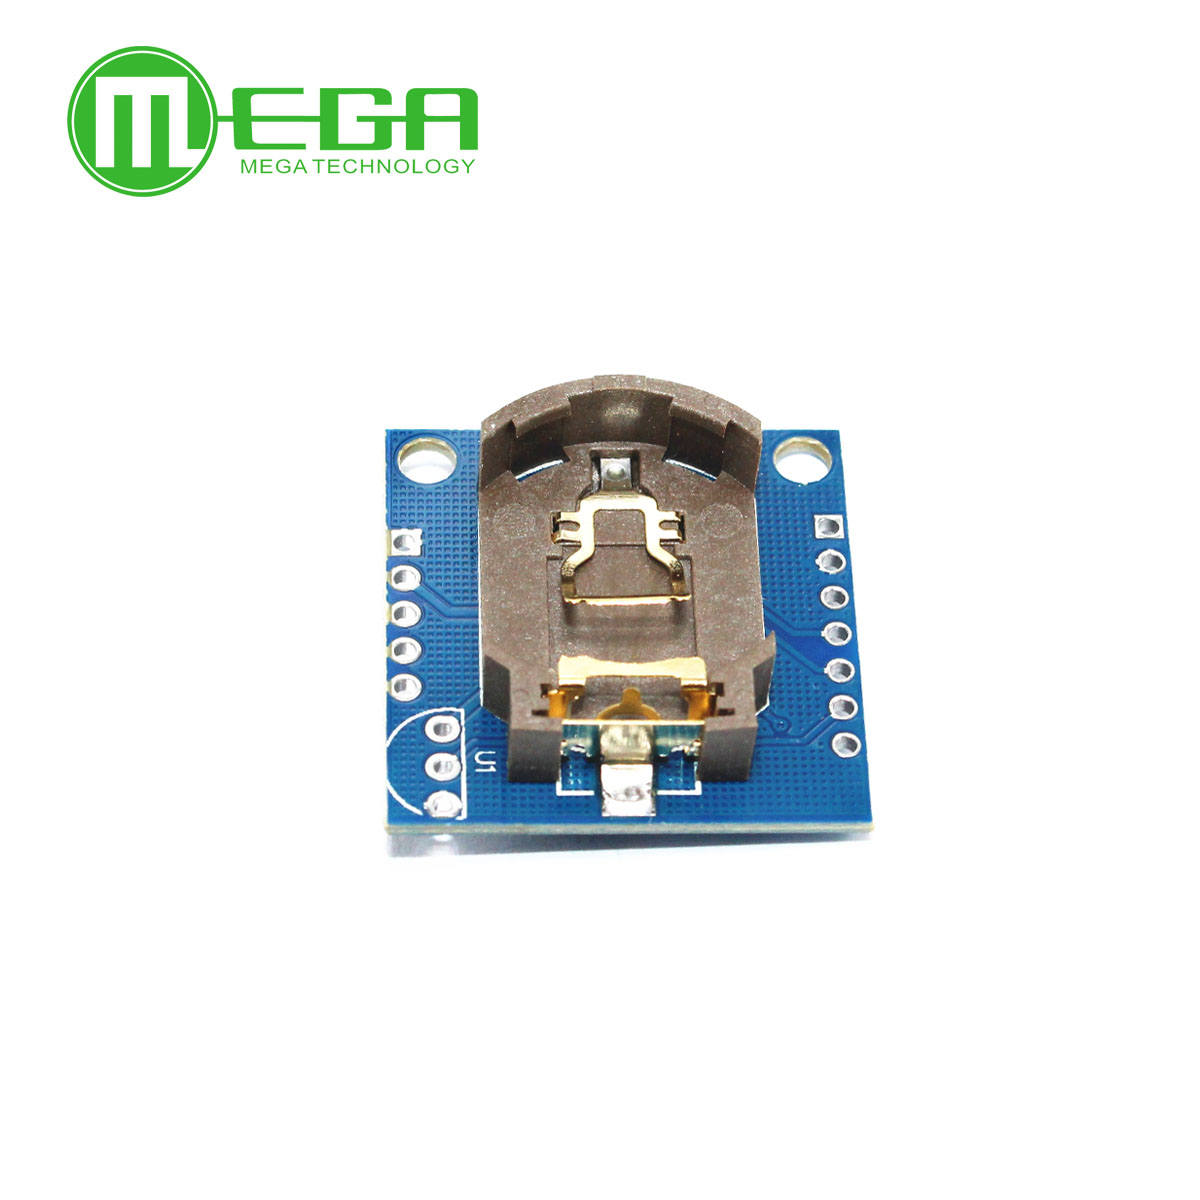 New I2C RTC DS1307 AT24C32 Real Time Clock Module For AVR ARM PIC Wholesale (battery NOT include)New I2C RTC DS1307 AT24C32 Real Time Clock Module For AVR ARM PIC Wholesale (battery NOT include)